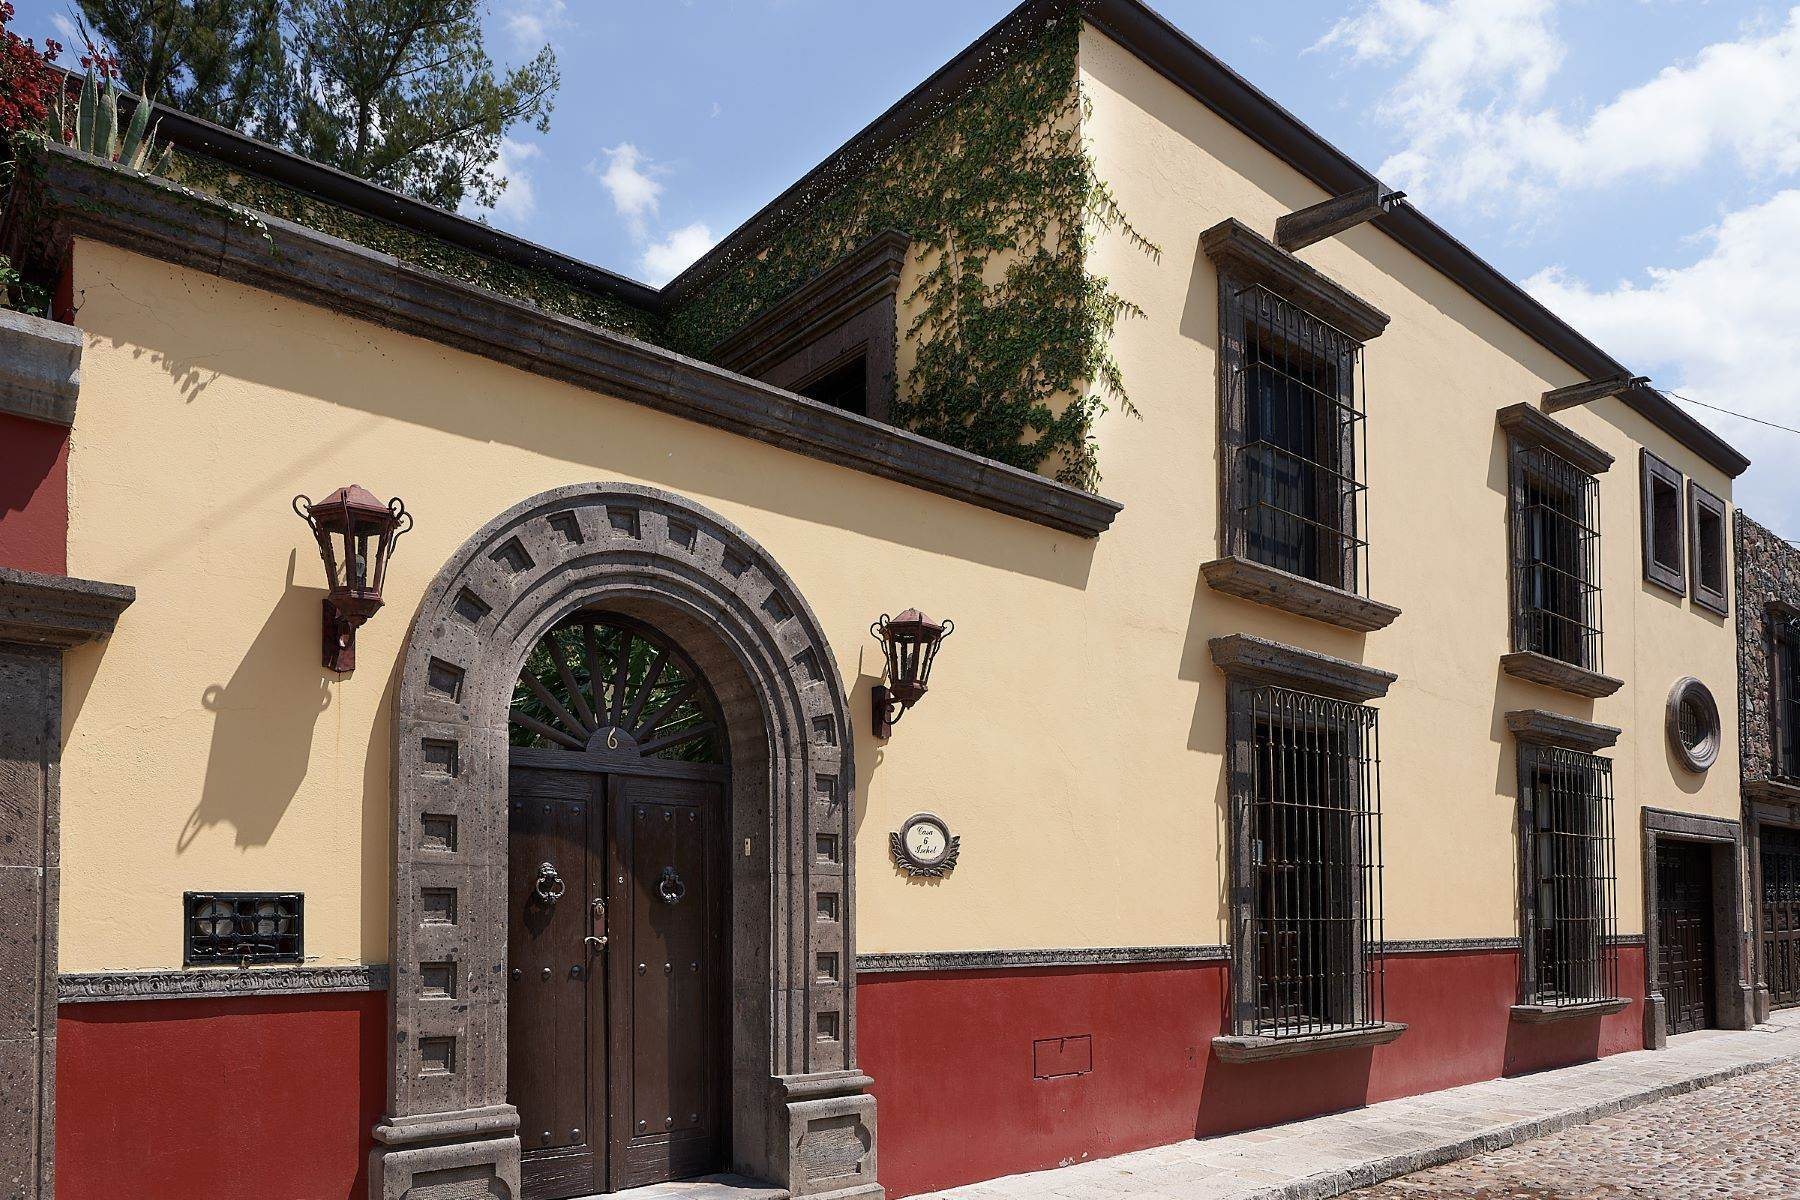 Single Family Homes for Sale at Casa Ixchel Privada de Pila Seca 6 San Miguel De Allende, Guanajuato 37700 Mexico